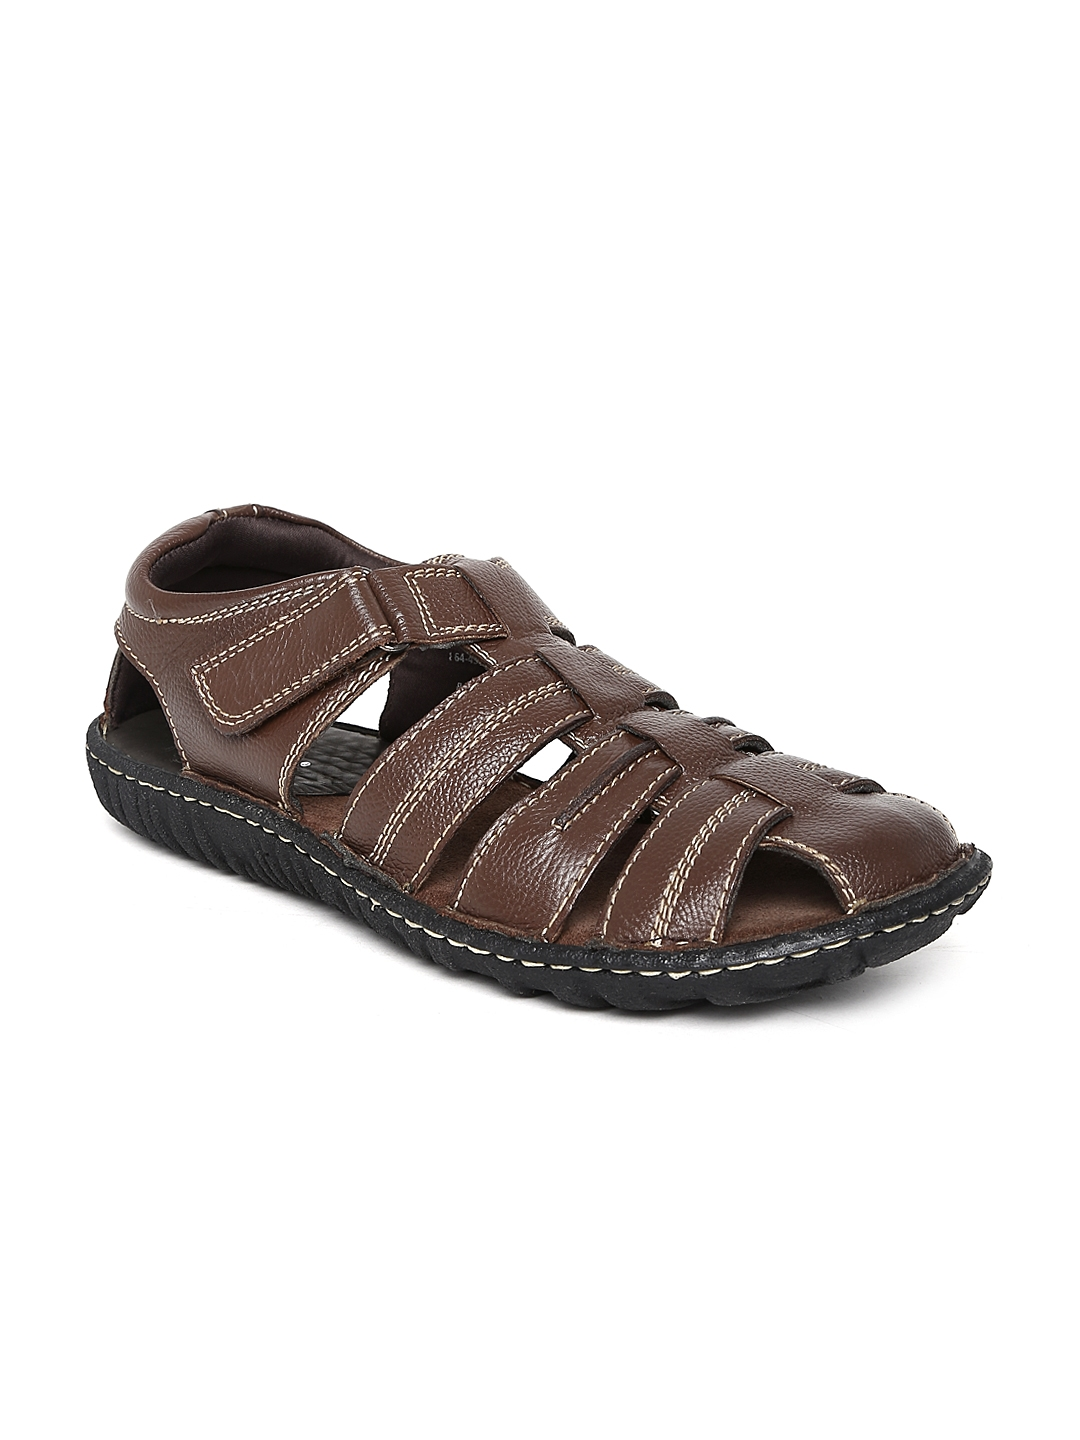 Buy Hush Puppies By Bata Men Brown Leather Sandals